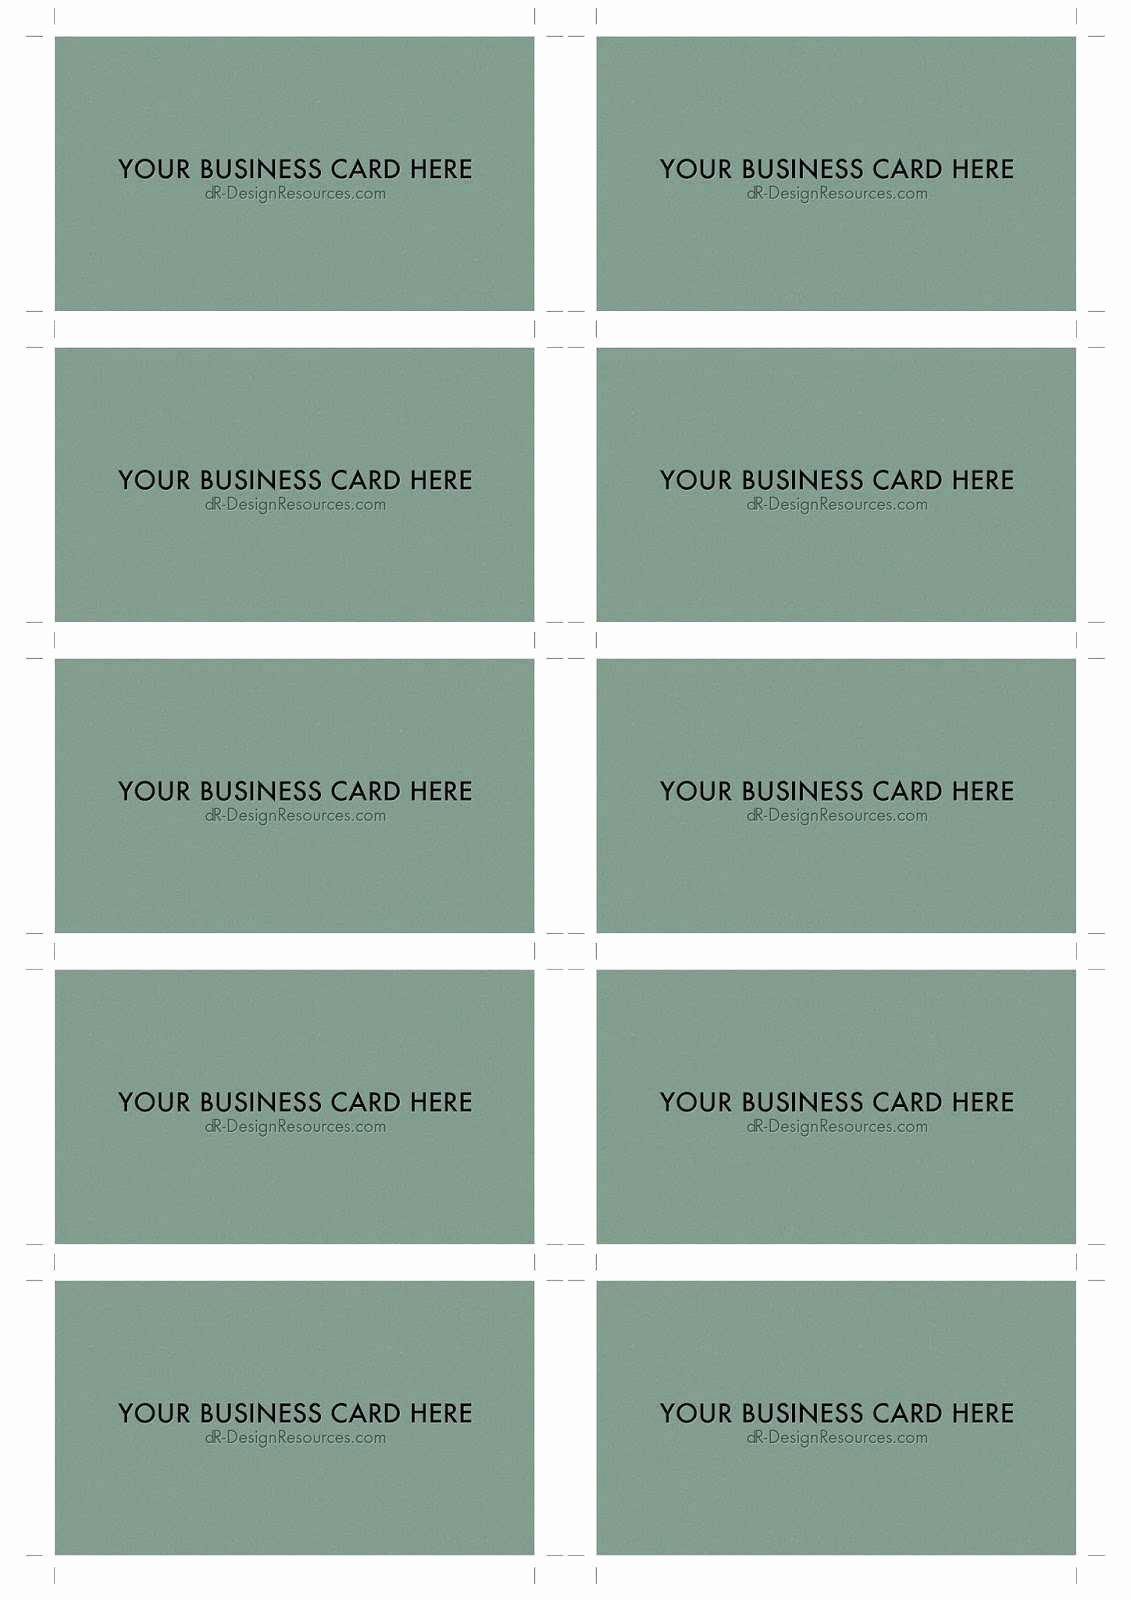 Blank Business Card Template Photoshop Fresh Shop Business Card Template with Bleed Unique Blank